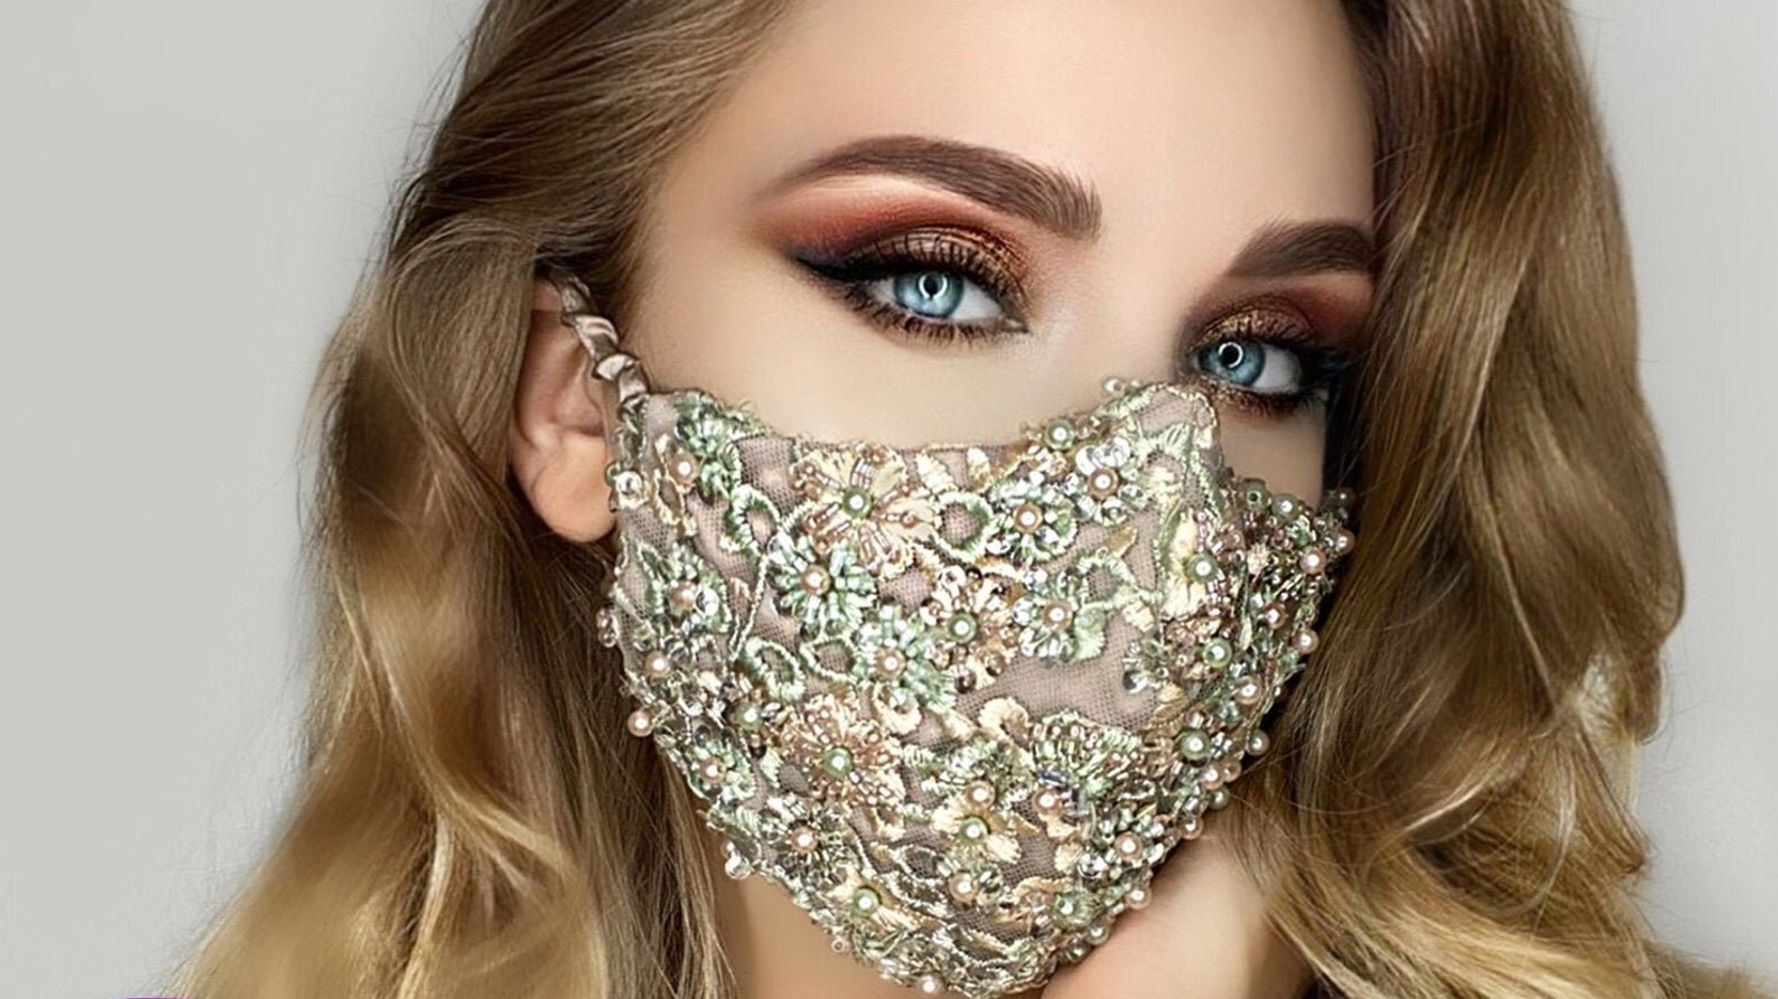 10 Beautiful Wedding Face Masks For Brides To Wear On Their Big Day